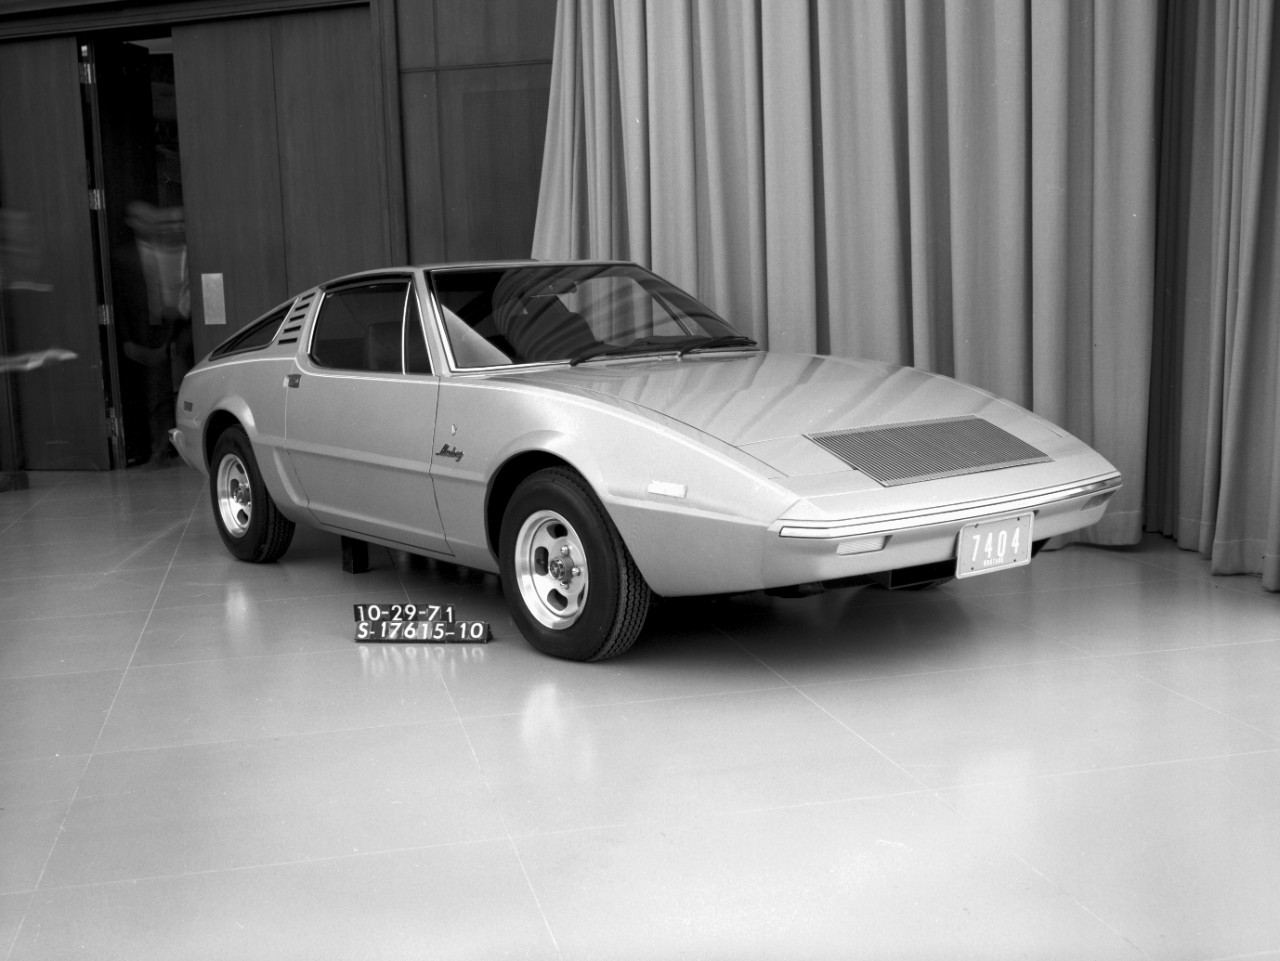 Early 80s styling - almost Japanese - from Ghia in 1971